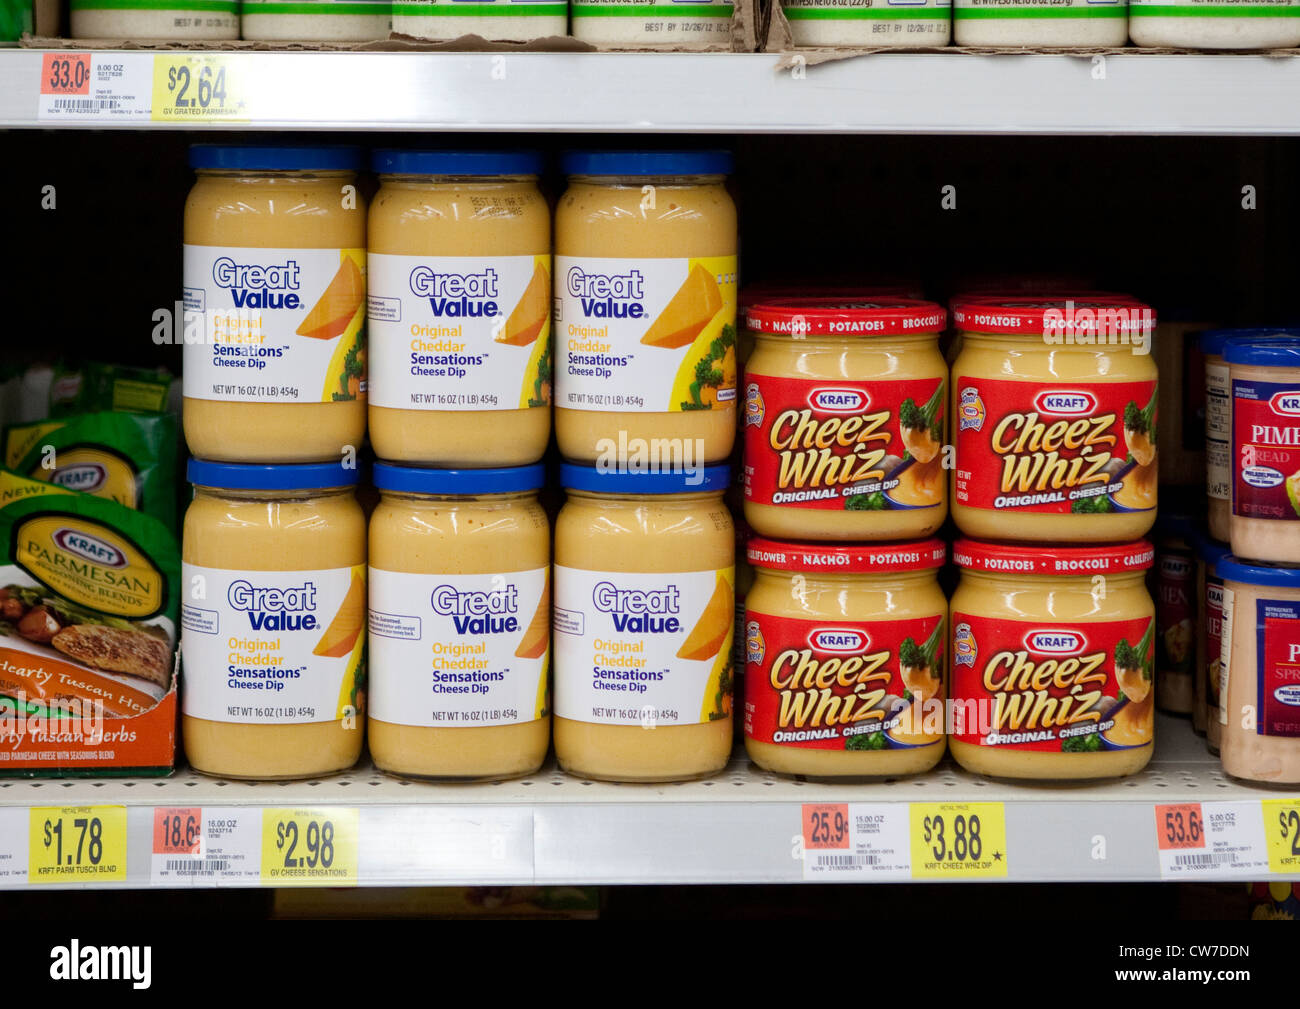 Cheddar cheese dip products on shelve of Wal-Mart store include Kraft name brand Cheez Whiz and comparable product - Stock Image